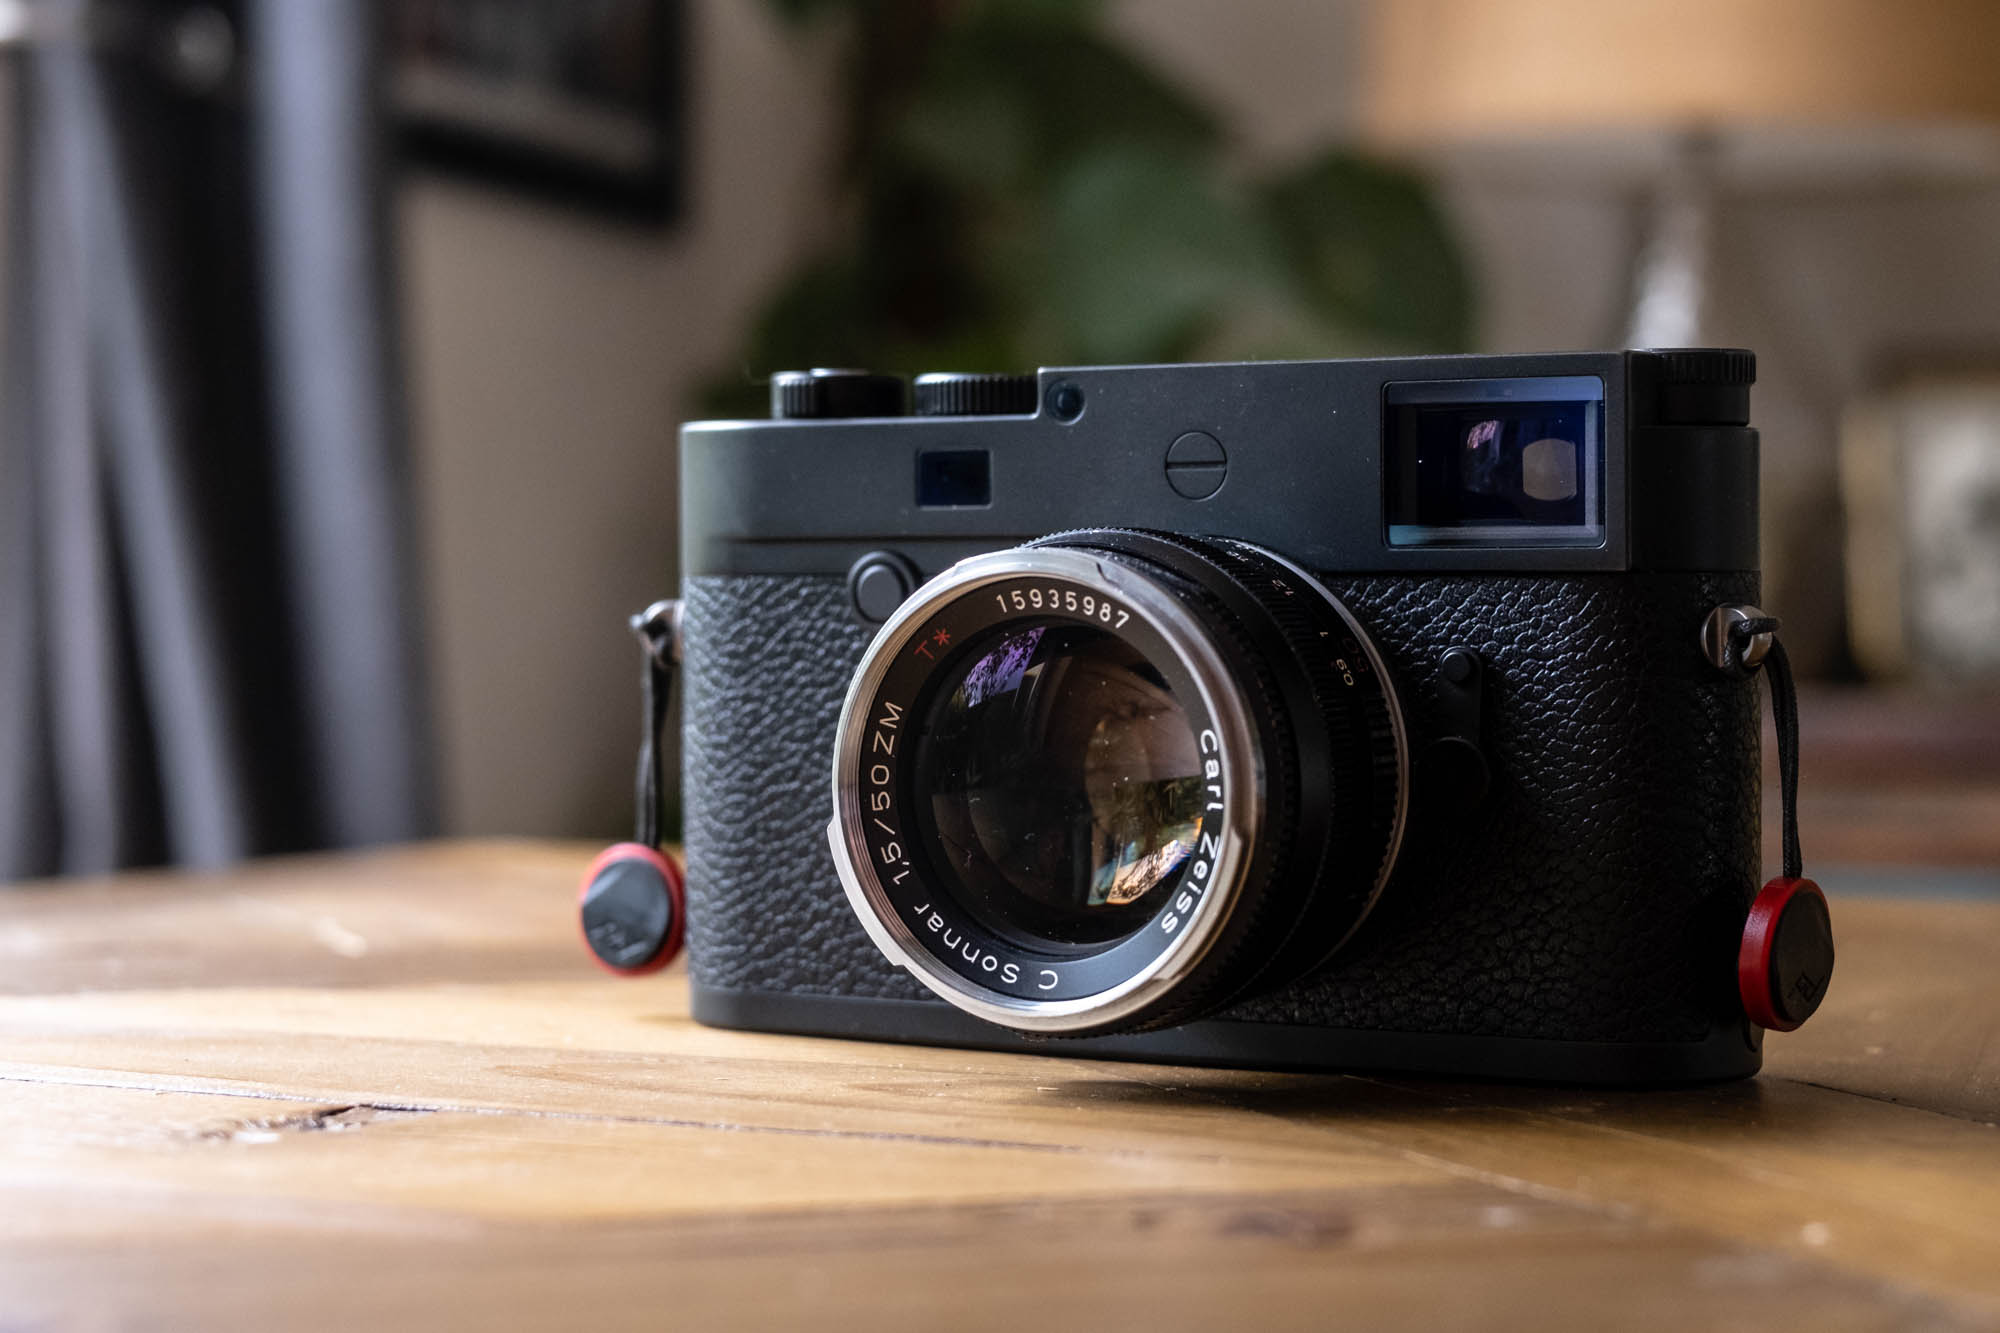 Leica M10-P Review - A Brilliantly Underwhelming Digital Rangefinder